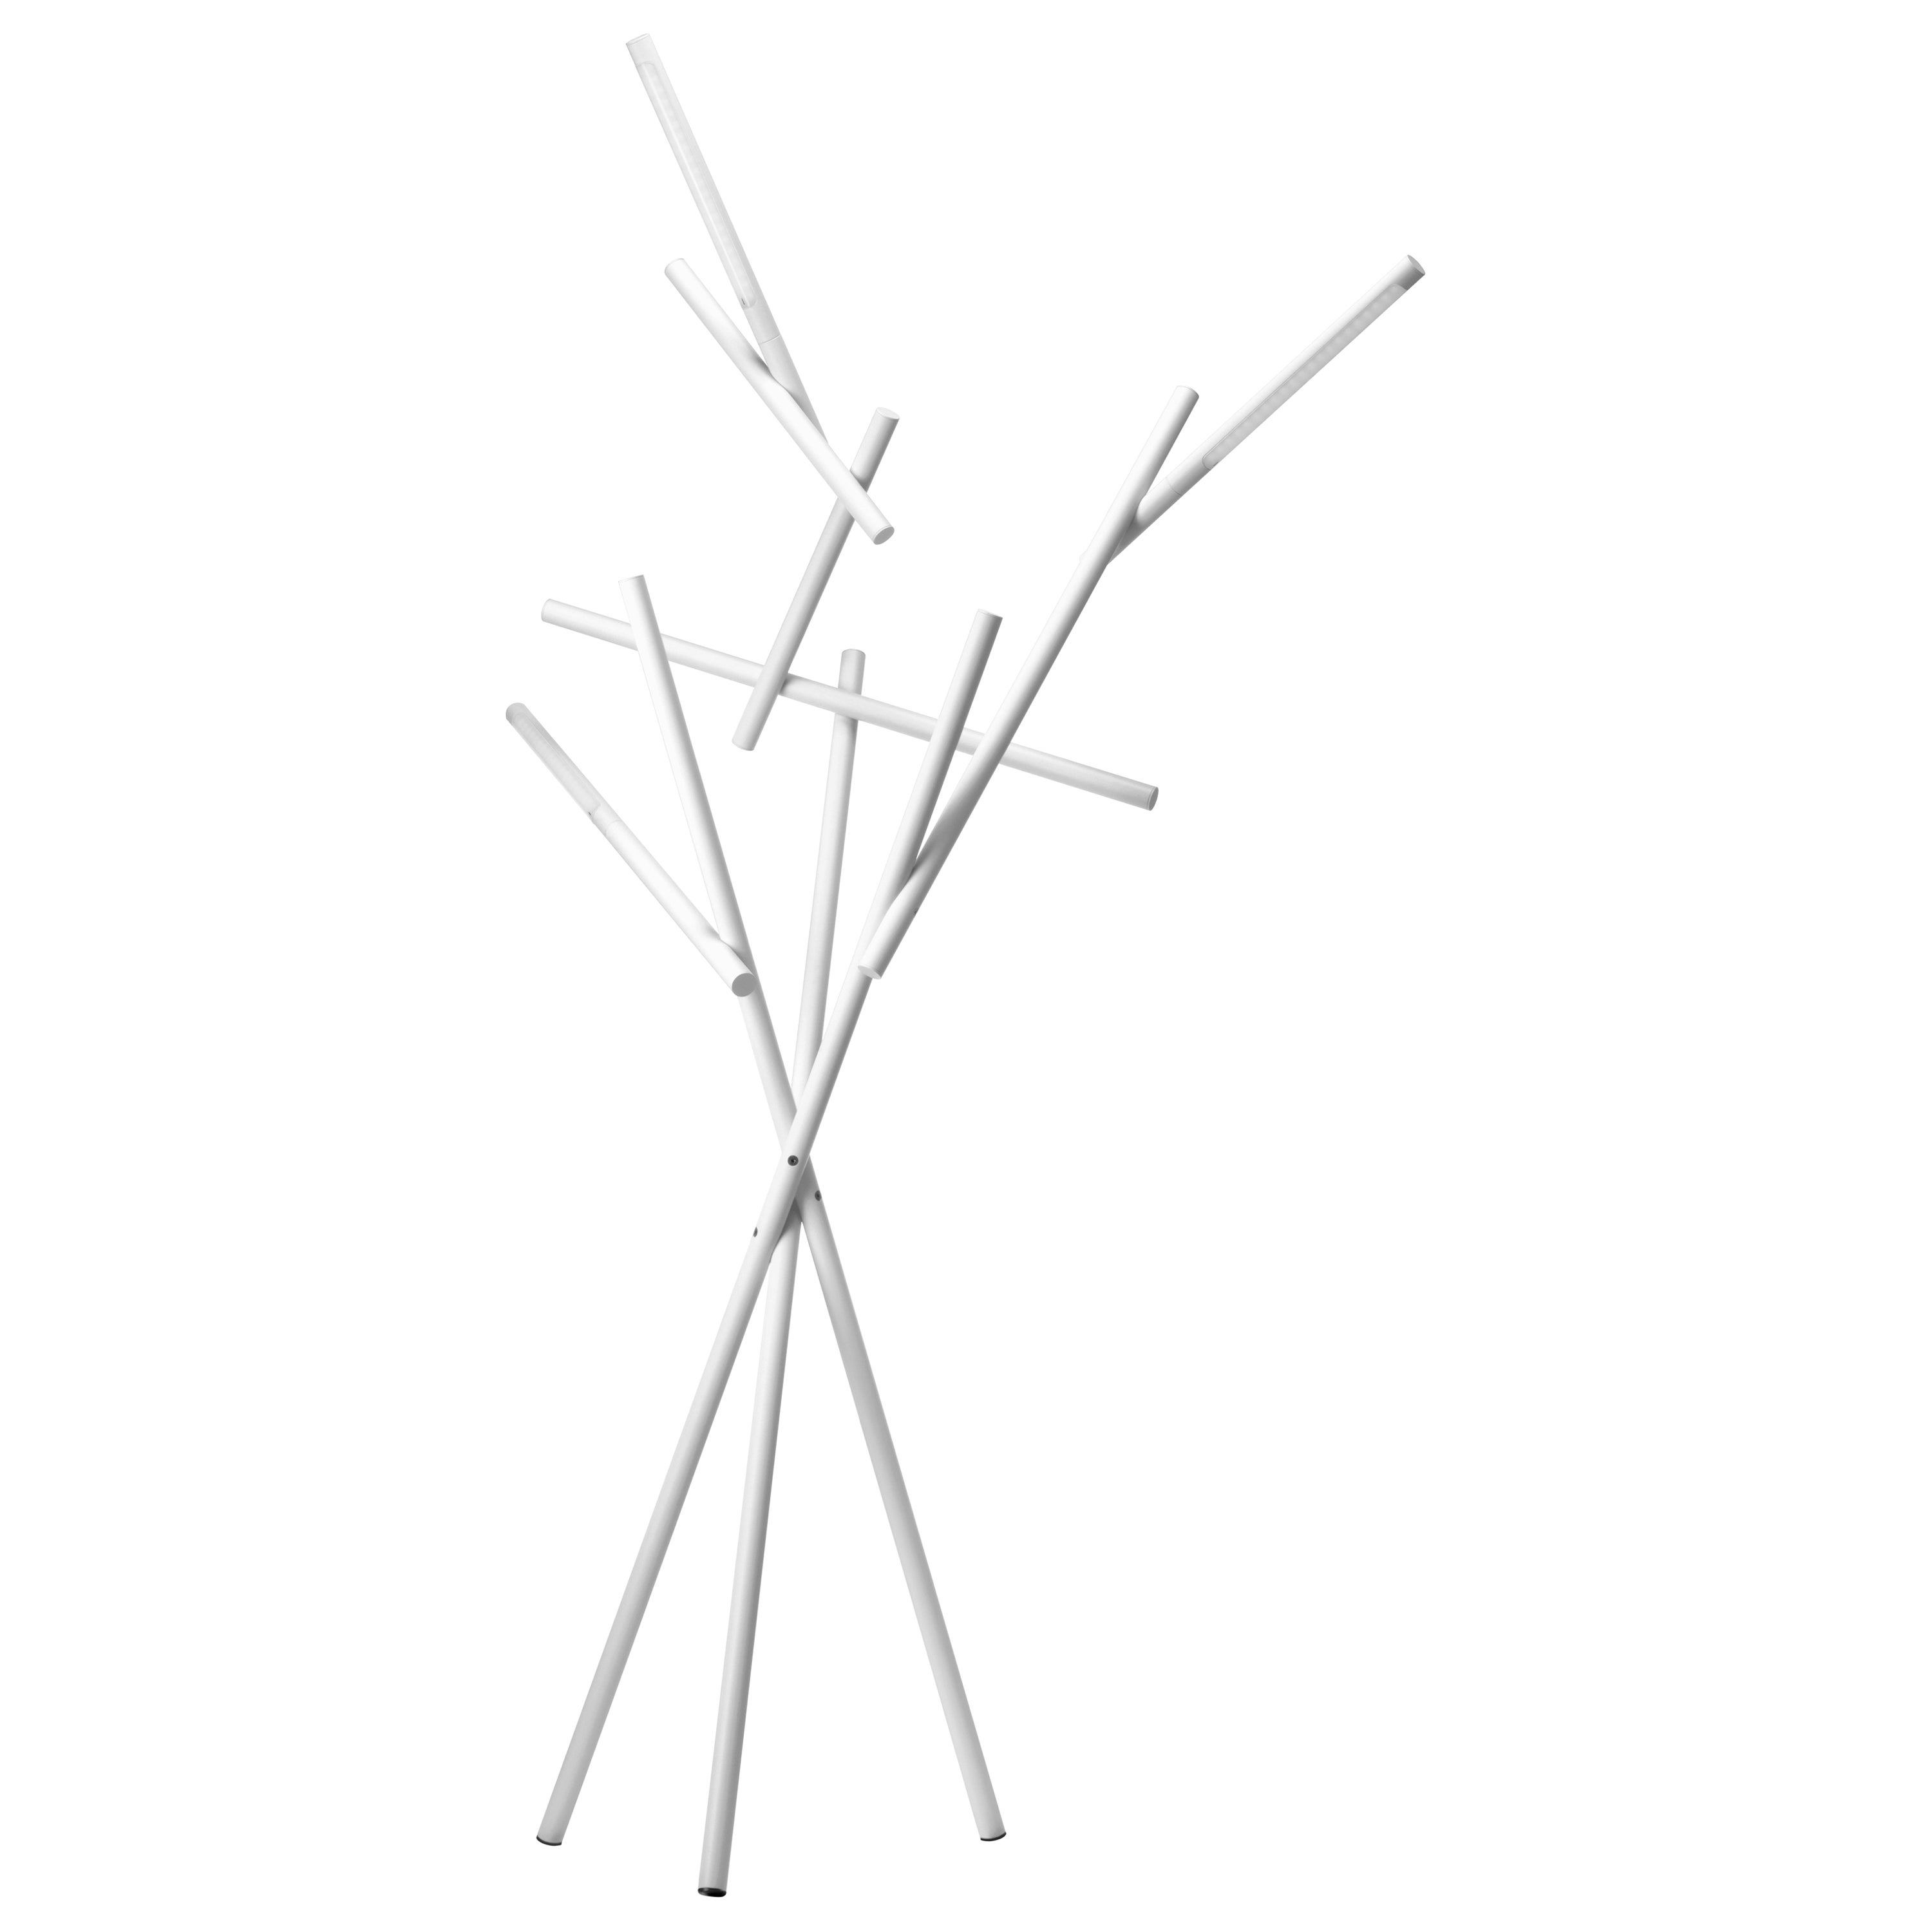 Foscarini Tuareg LED Floor Lamp in White by Ferruccio Laviani